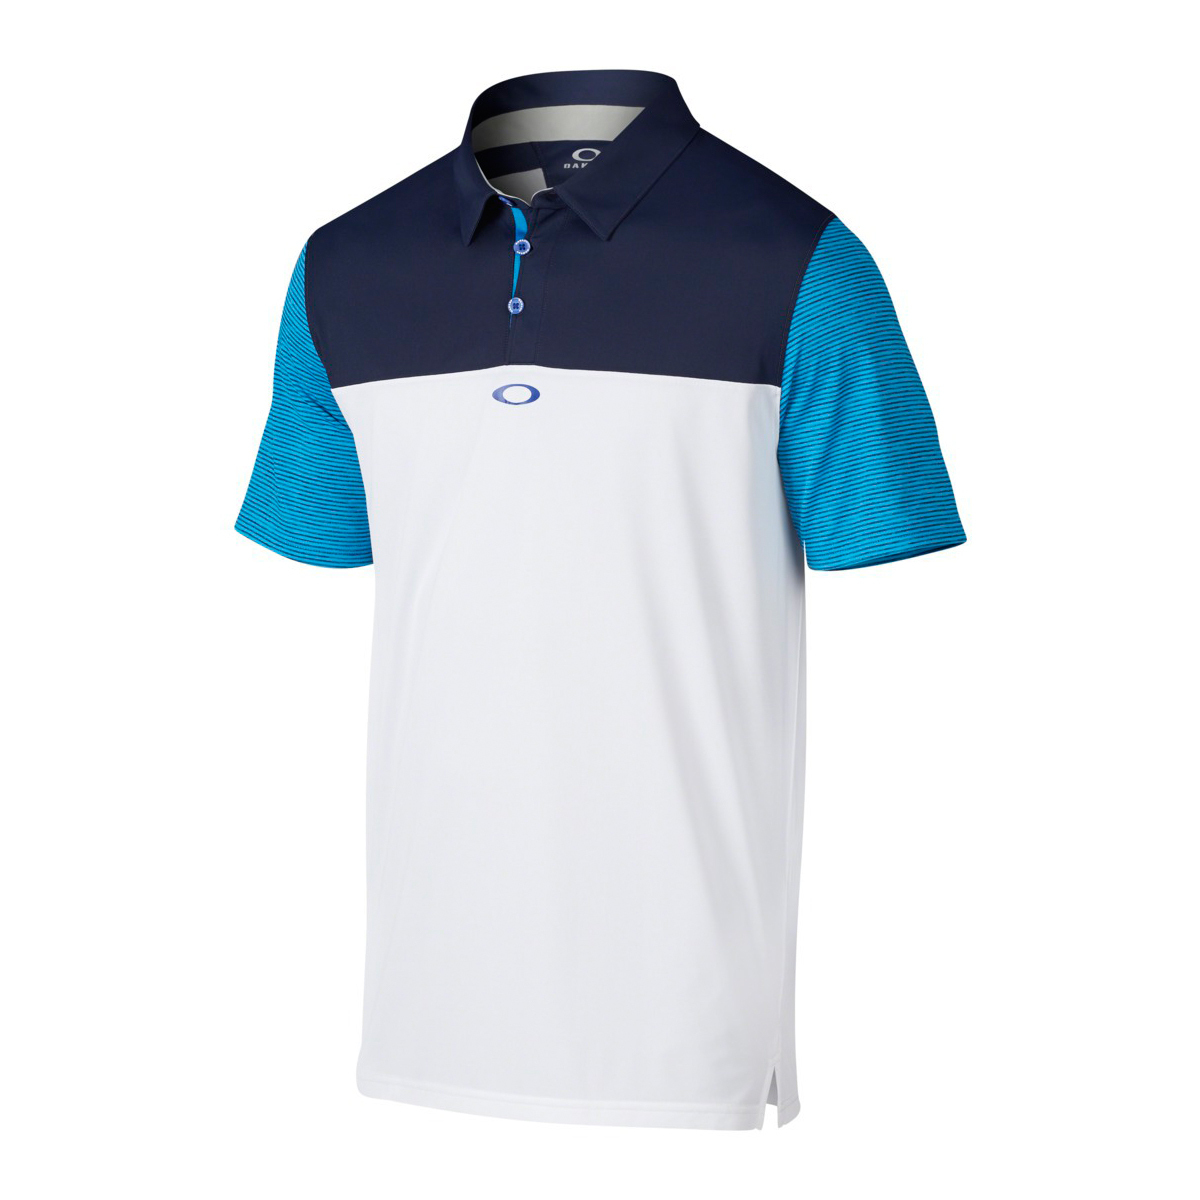 Blue and White Striped Sleeve Oakley Polo